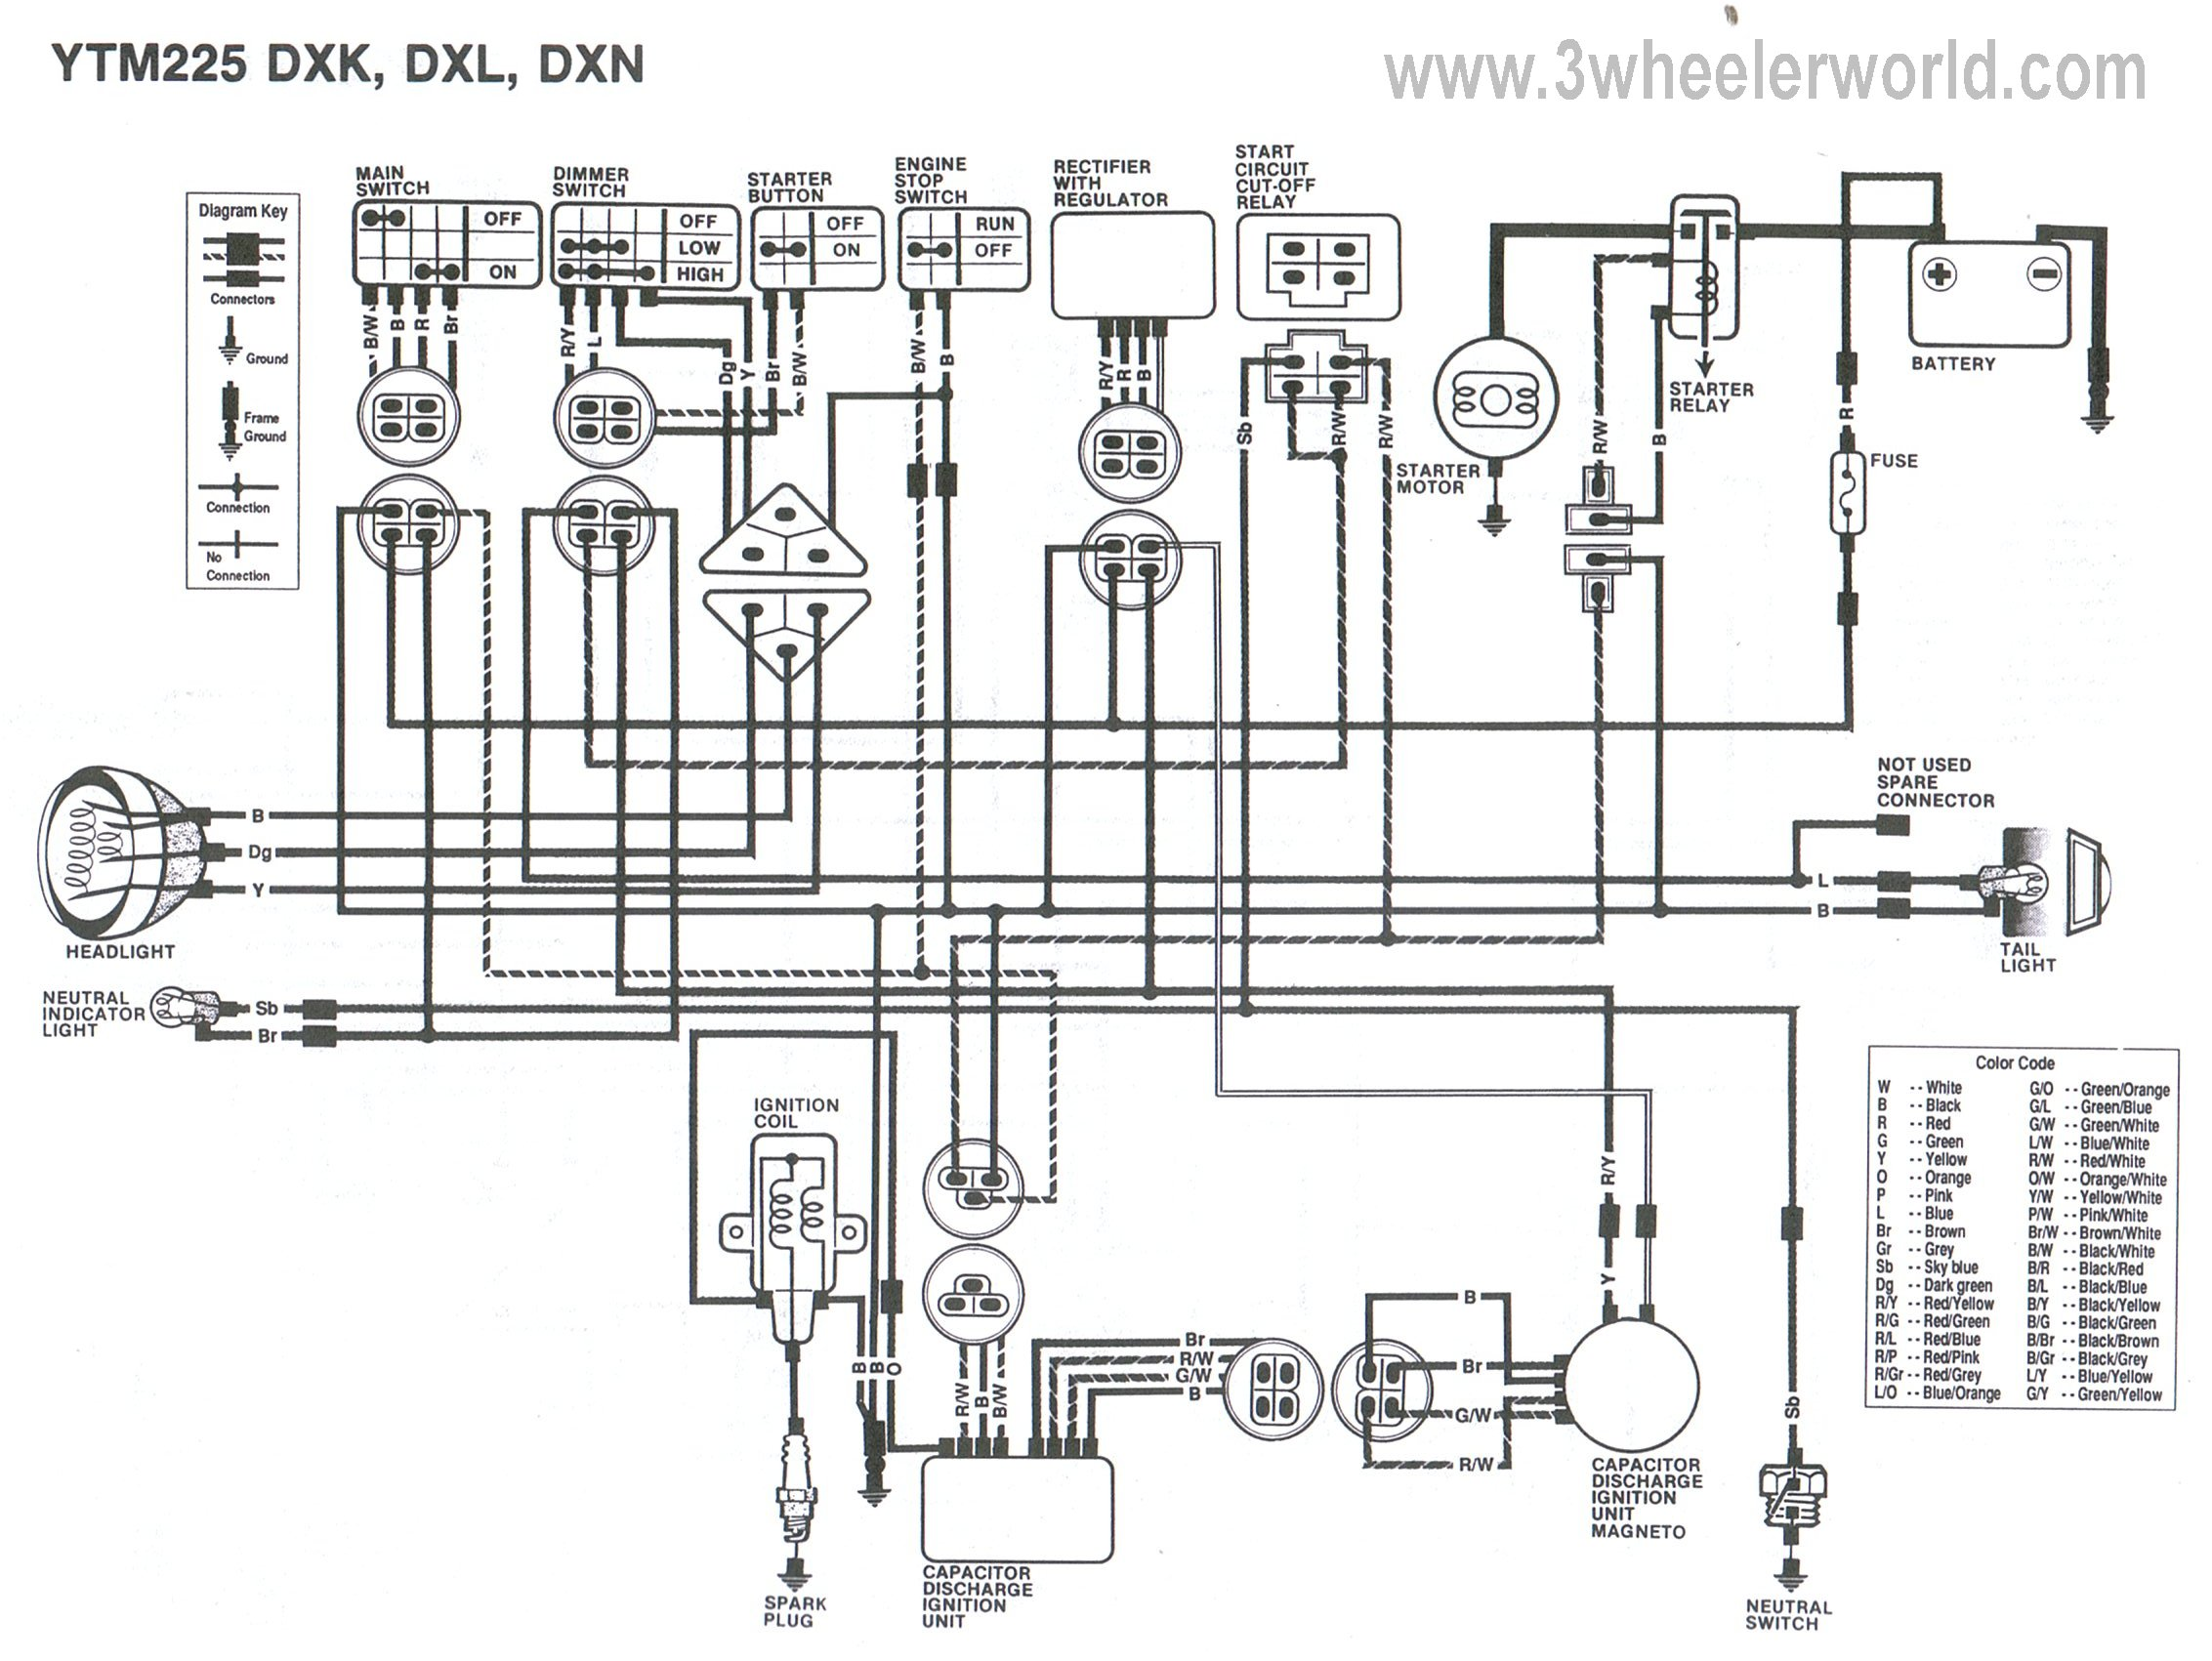 YTM225DXKDXLDXN 3 wheeler world tech help yamaha wiring diagrams yamaha moto 4 wiring schematic at readyjetset.co